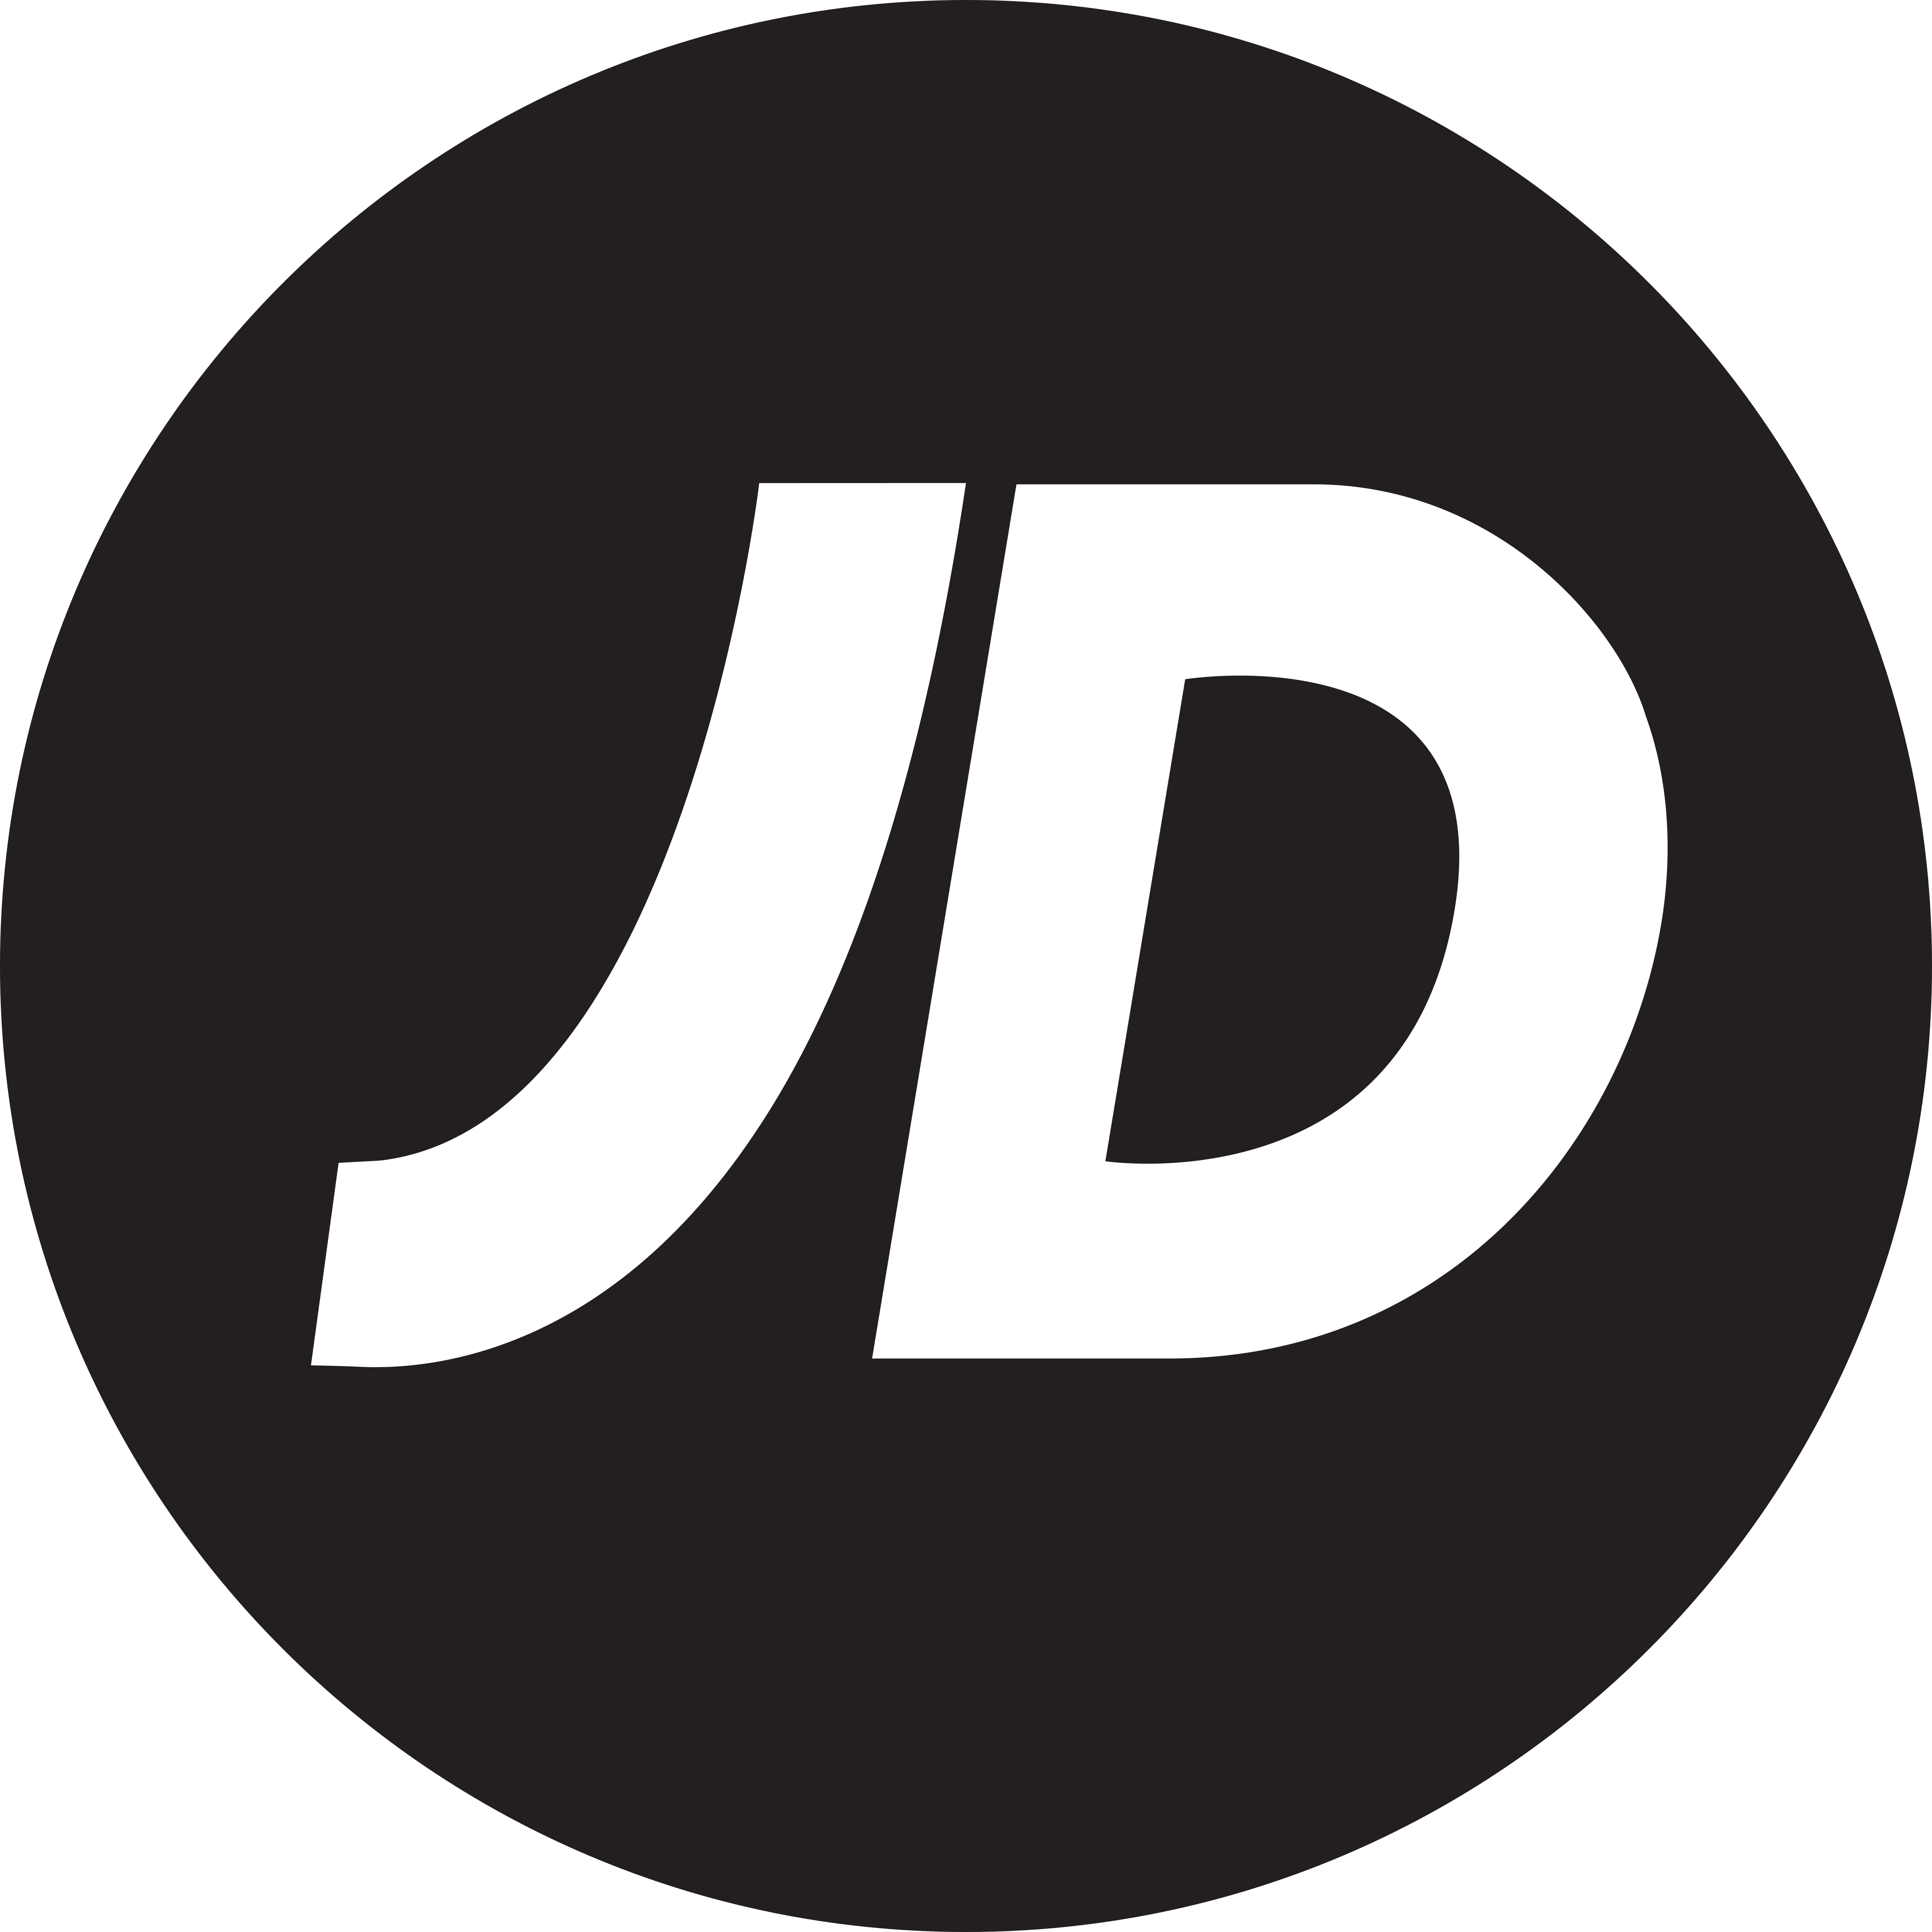 jd sports logos clipart birmingham airport svg guide 00pm clipground